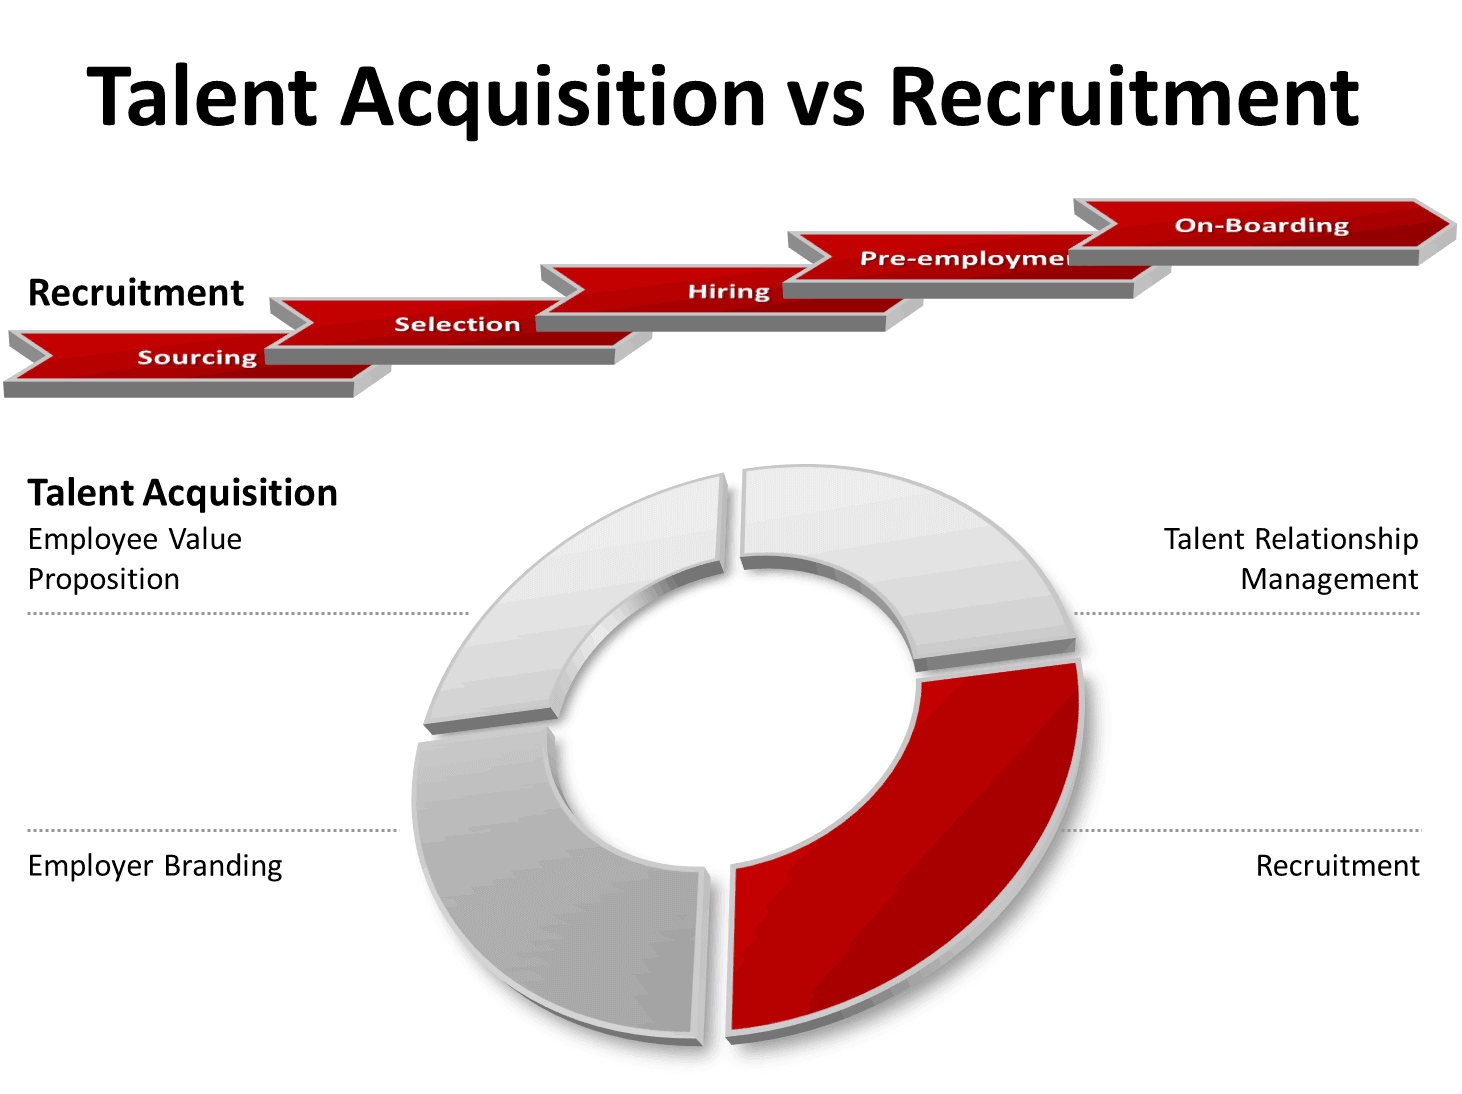 Talent Acquisition vs Recruitment